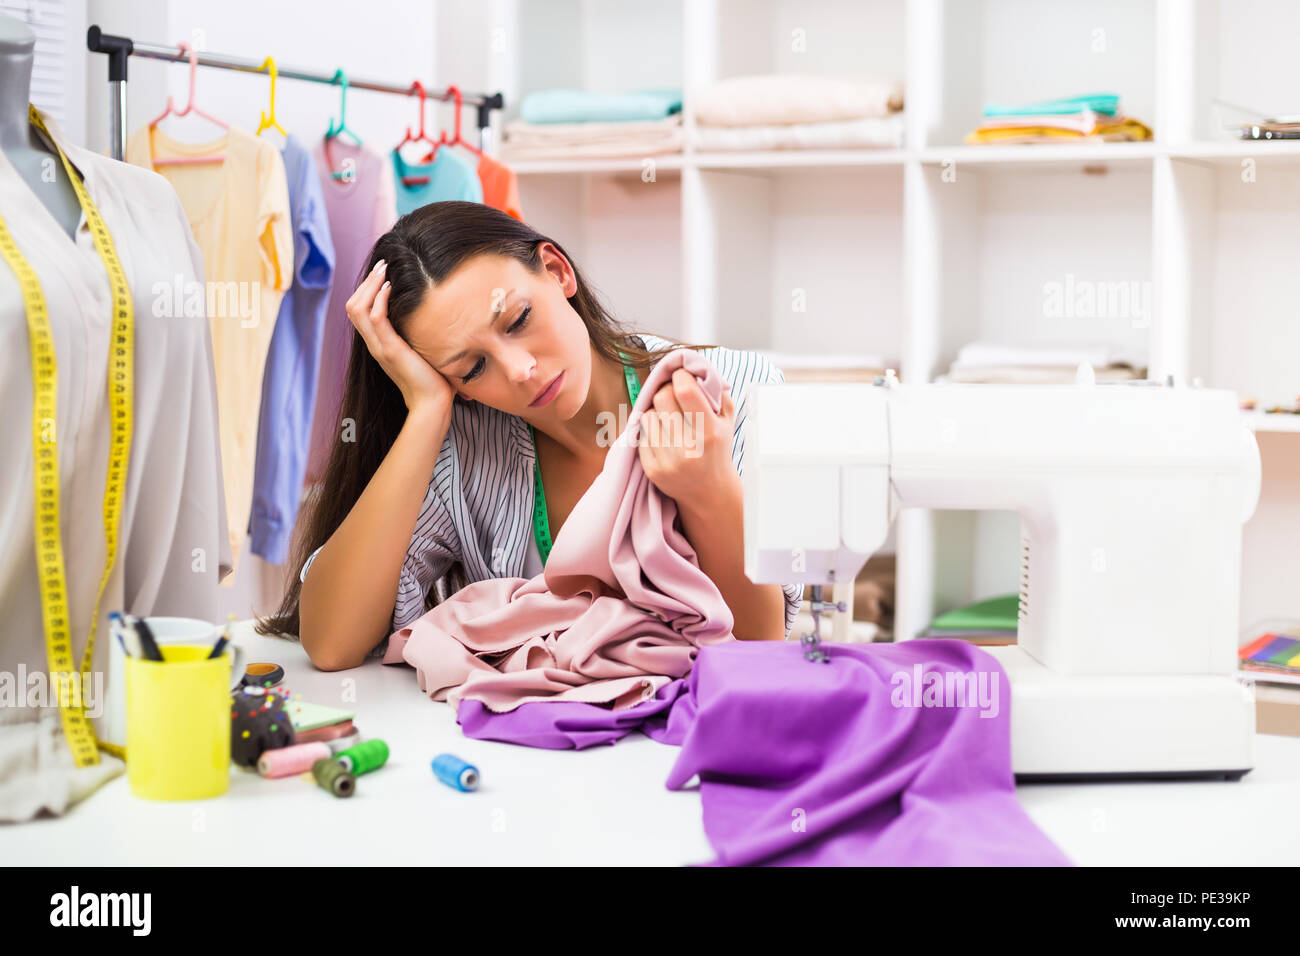 Seamstress has made a mistake while working at her workshop. - Stock Image